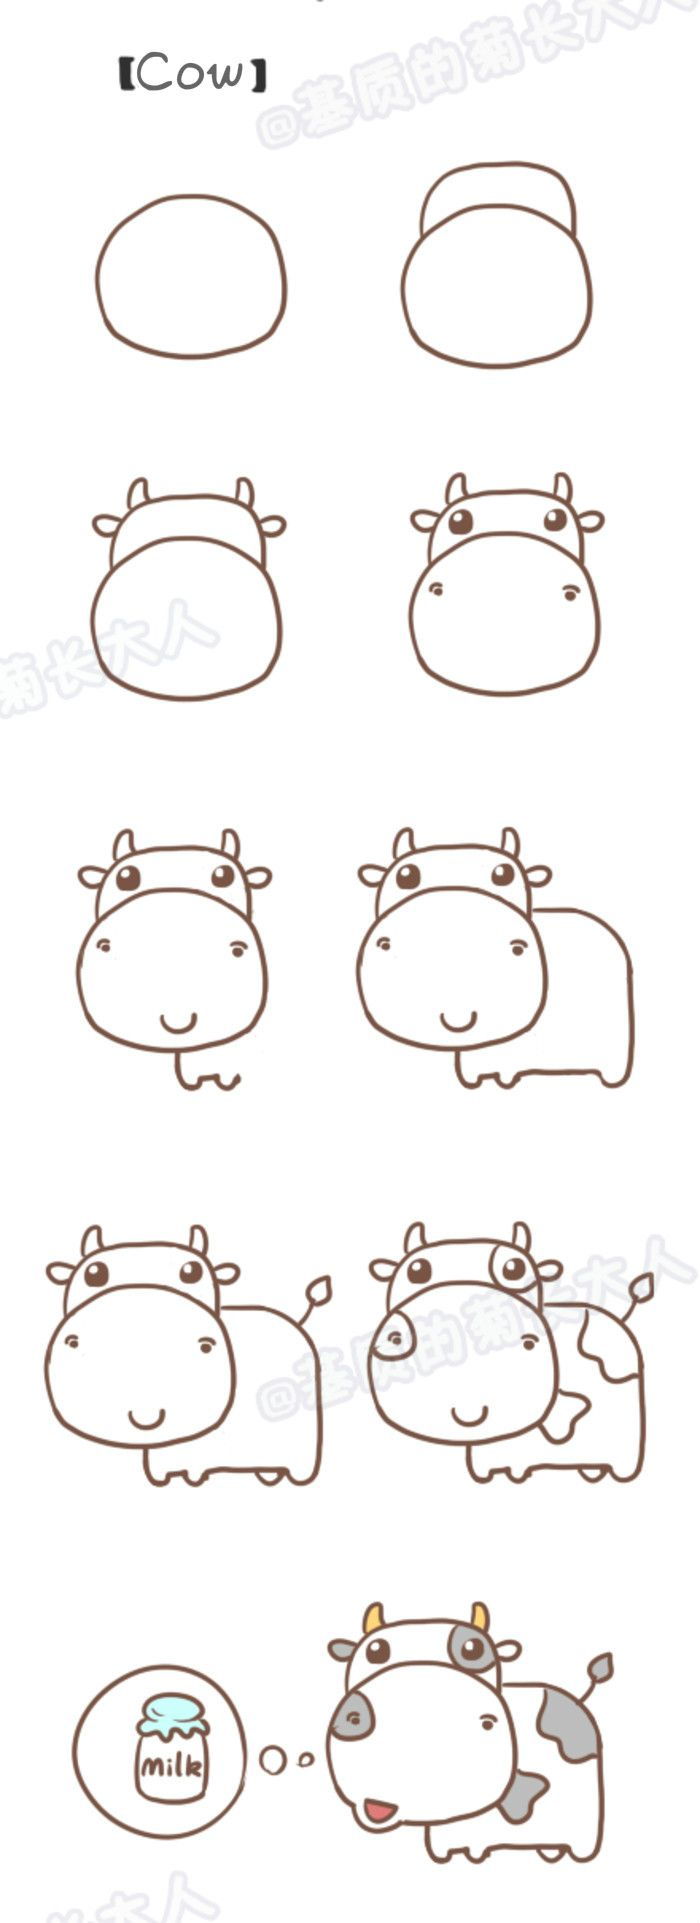 Step By Step Drawing Learn To Draw A Cow Dessins Etapes Par